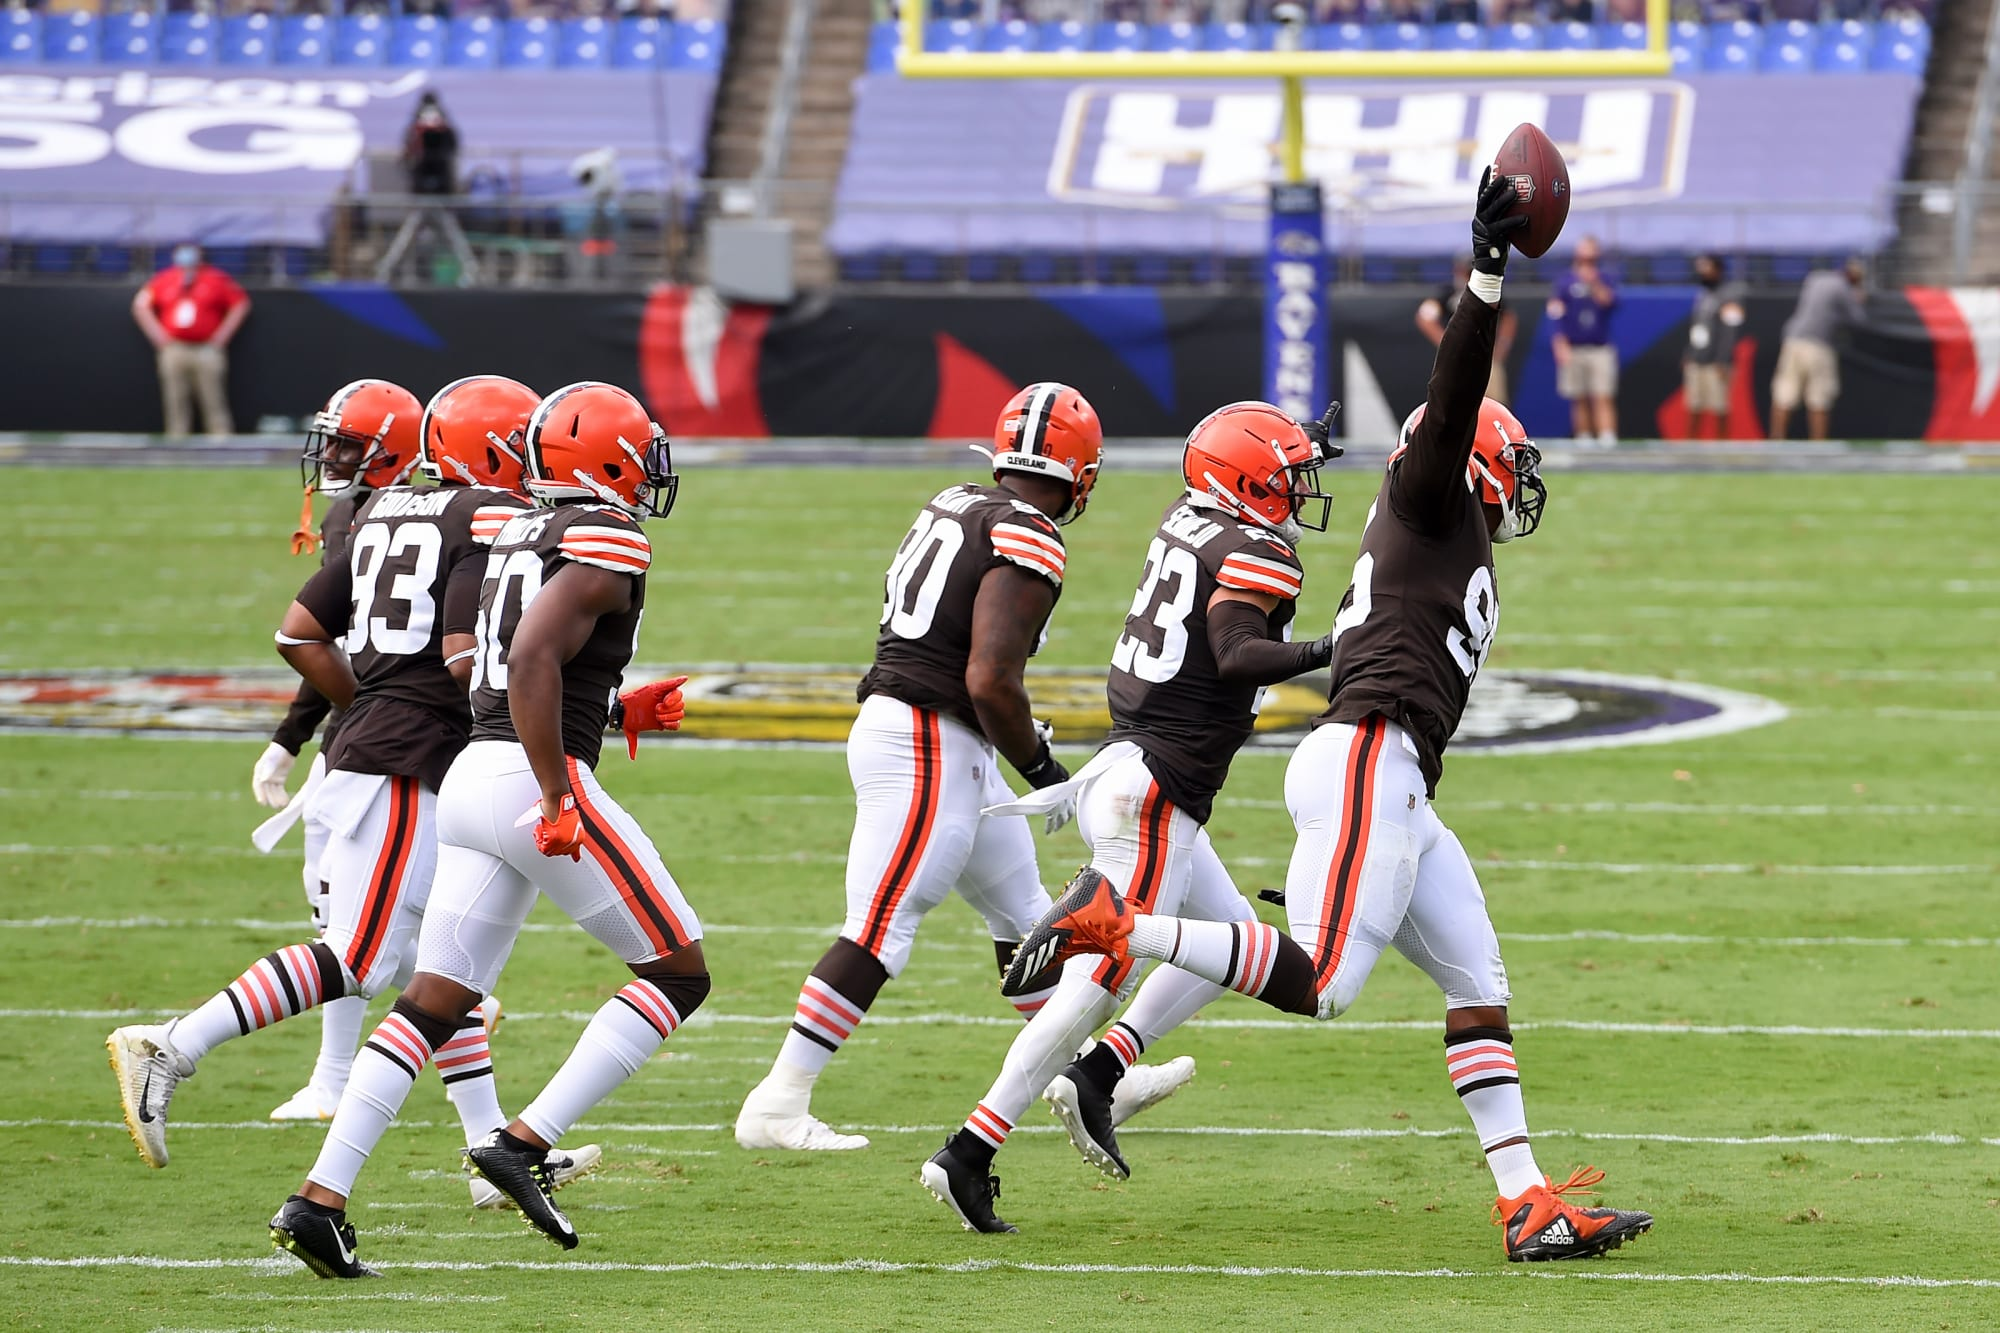 Browns uniform combination for Thursday Night Football is awesome